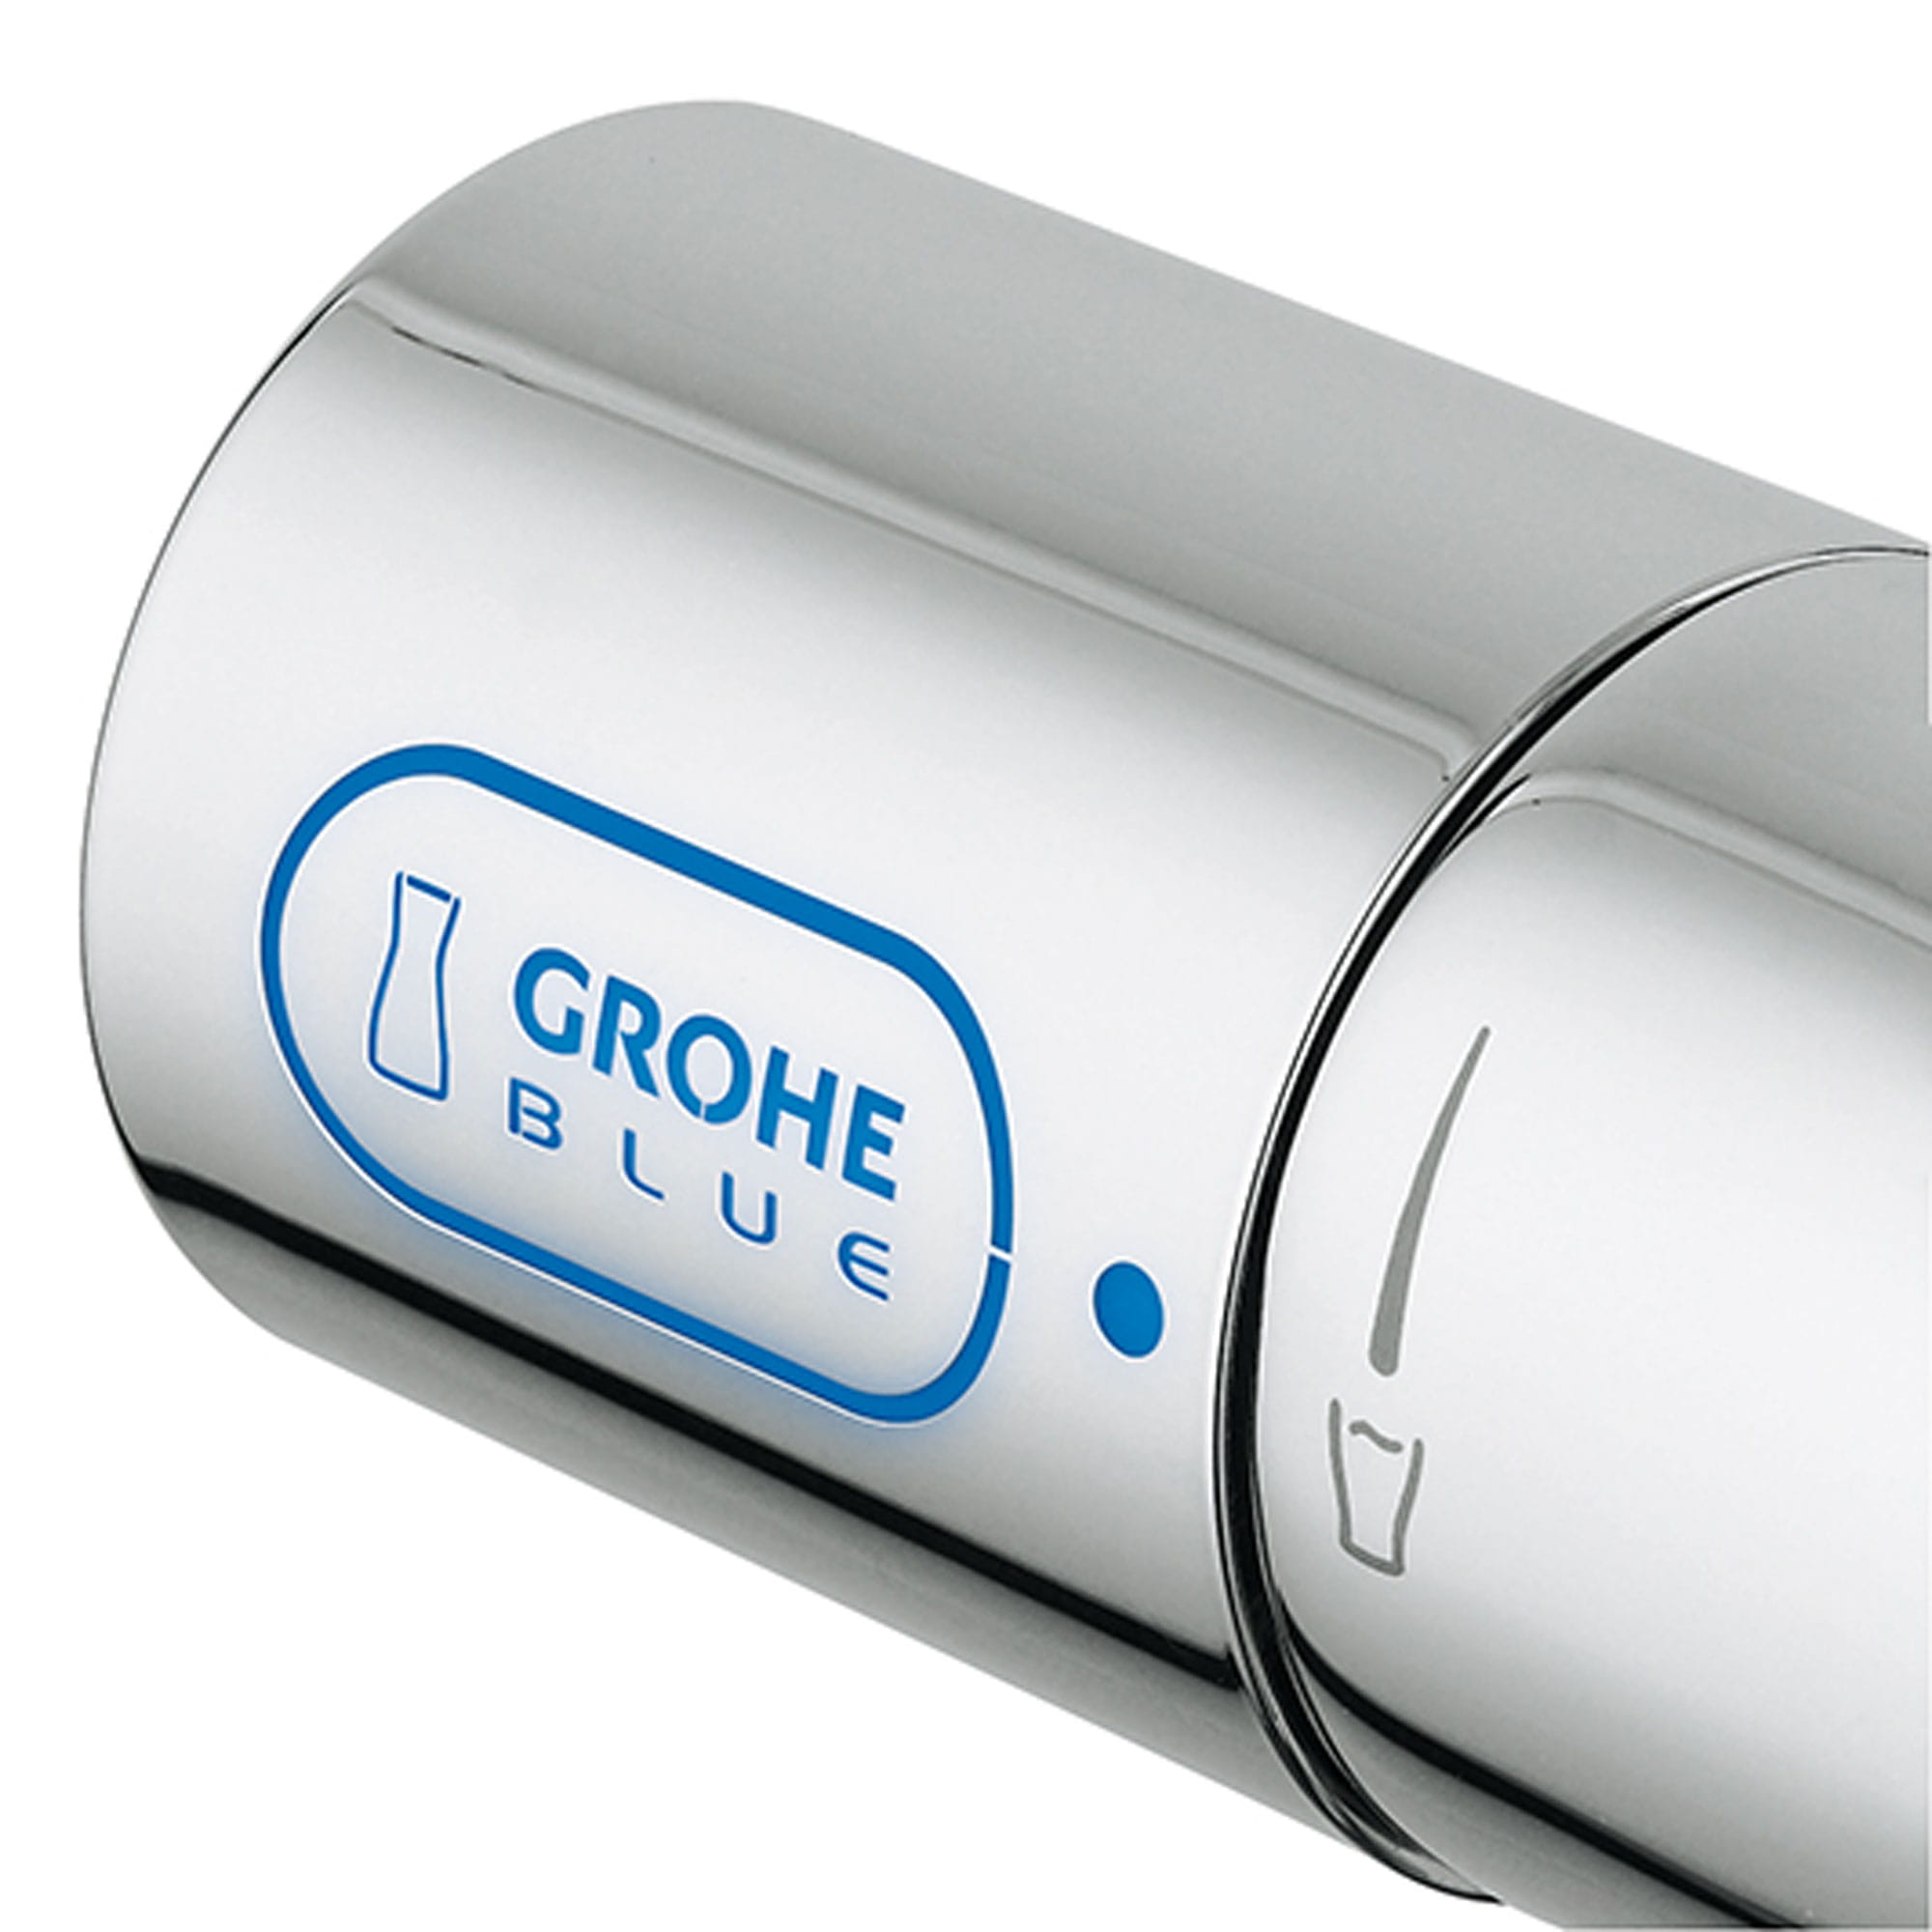 closeup on Grohe Blue turn knob